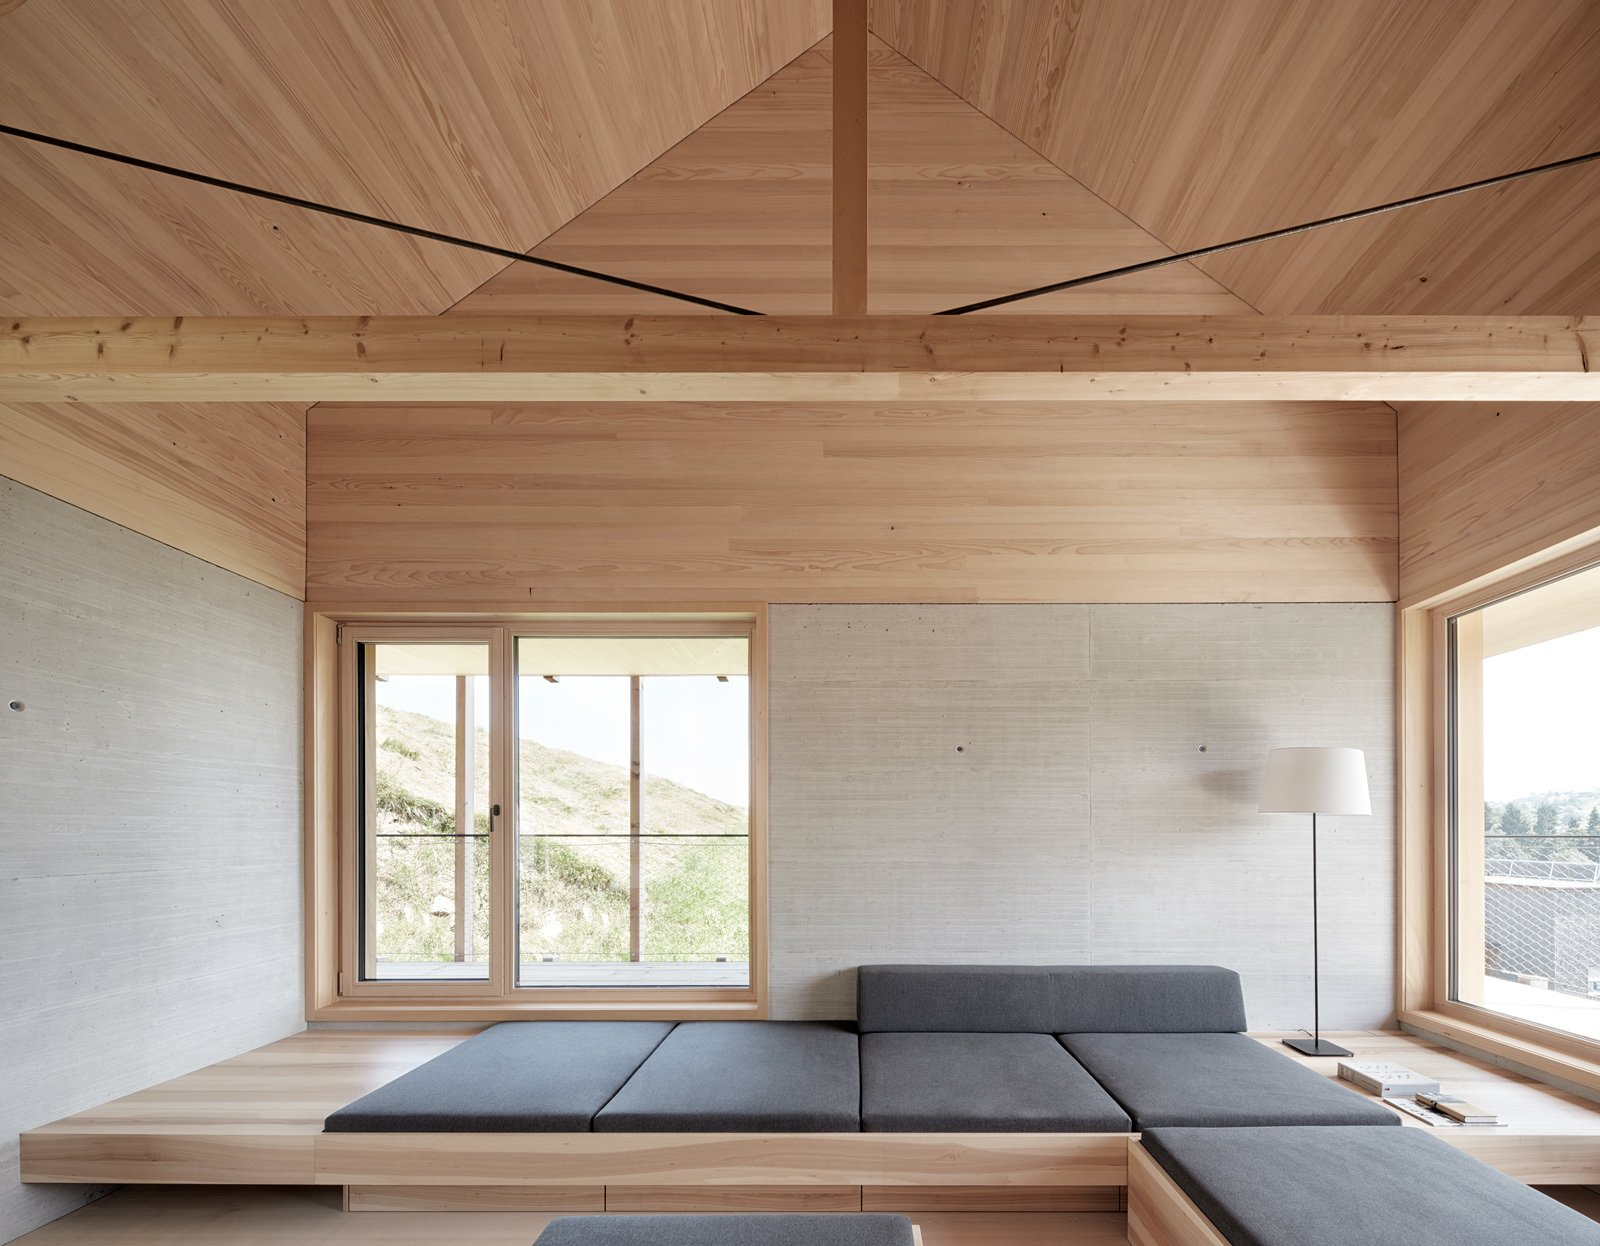 A restrained materials palette gives the minimalist home a crisp and clean appearance.